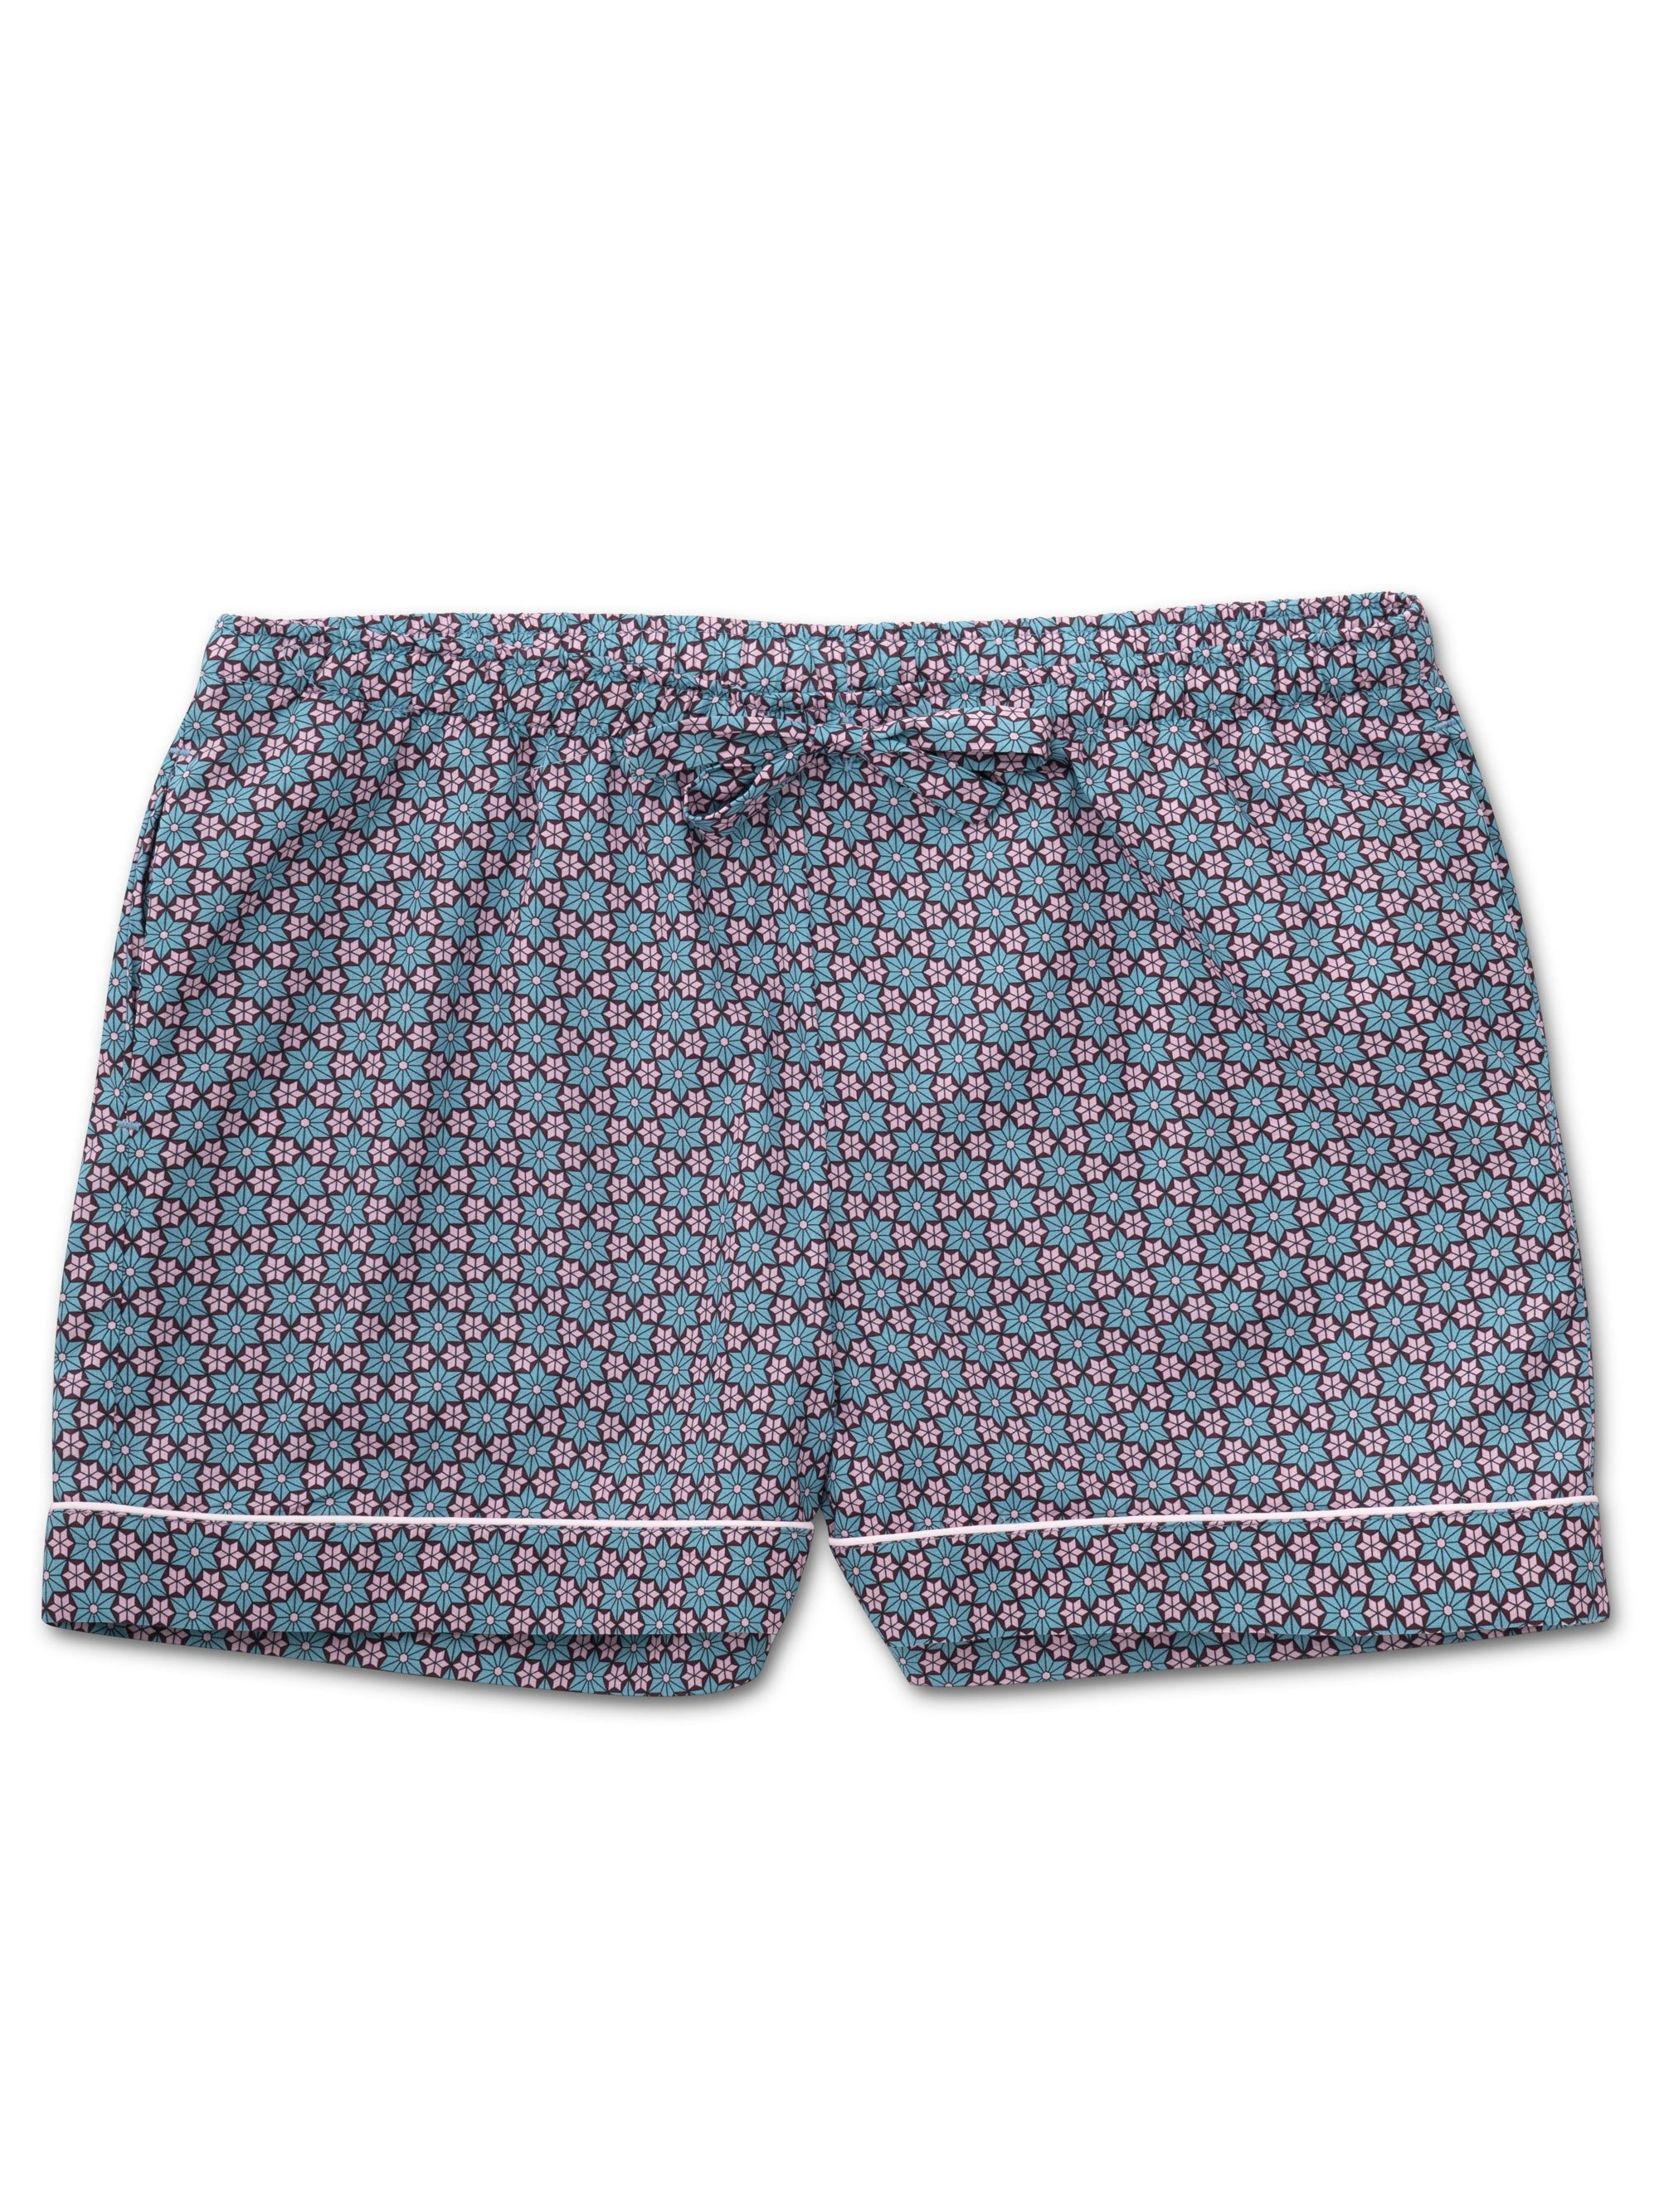 Women's Lounge Shorts Ledbury 37 Cotton Batiste Multi